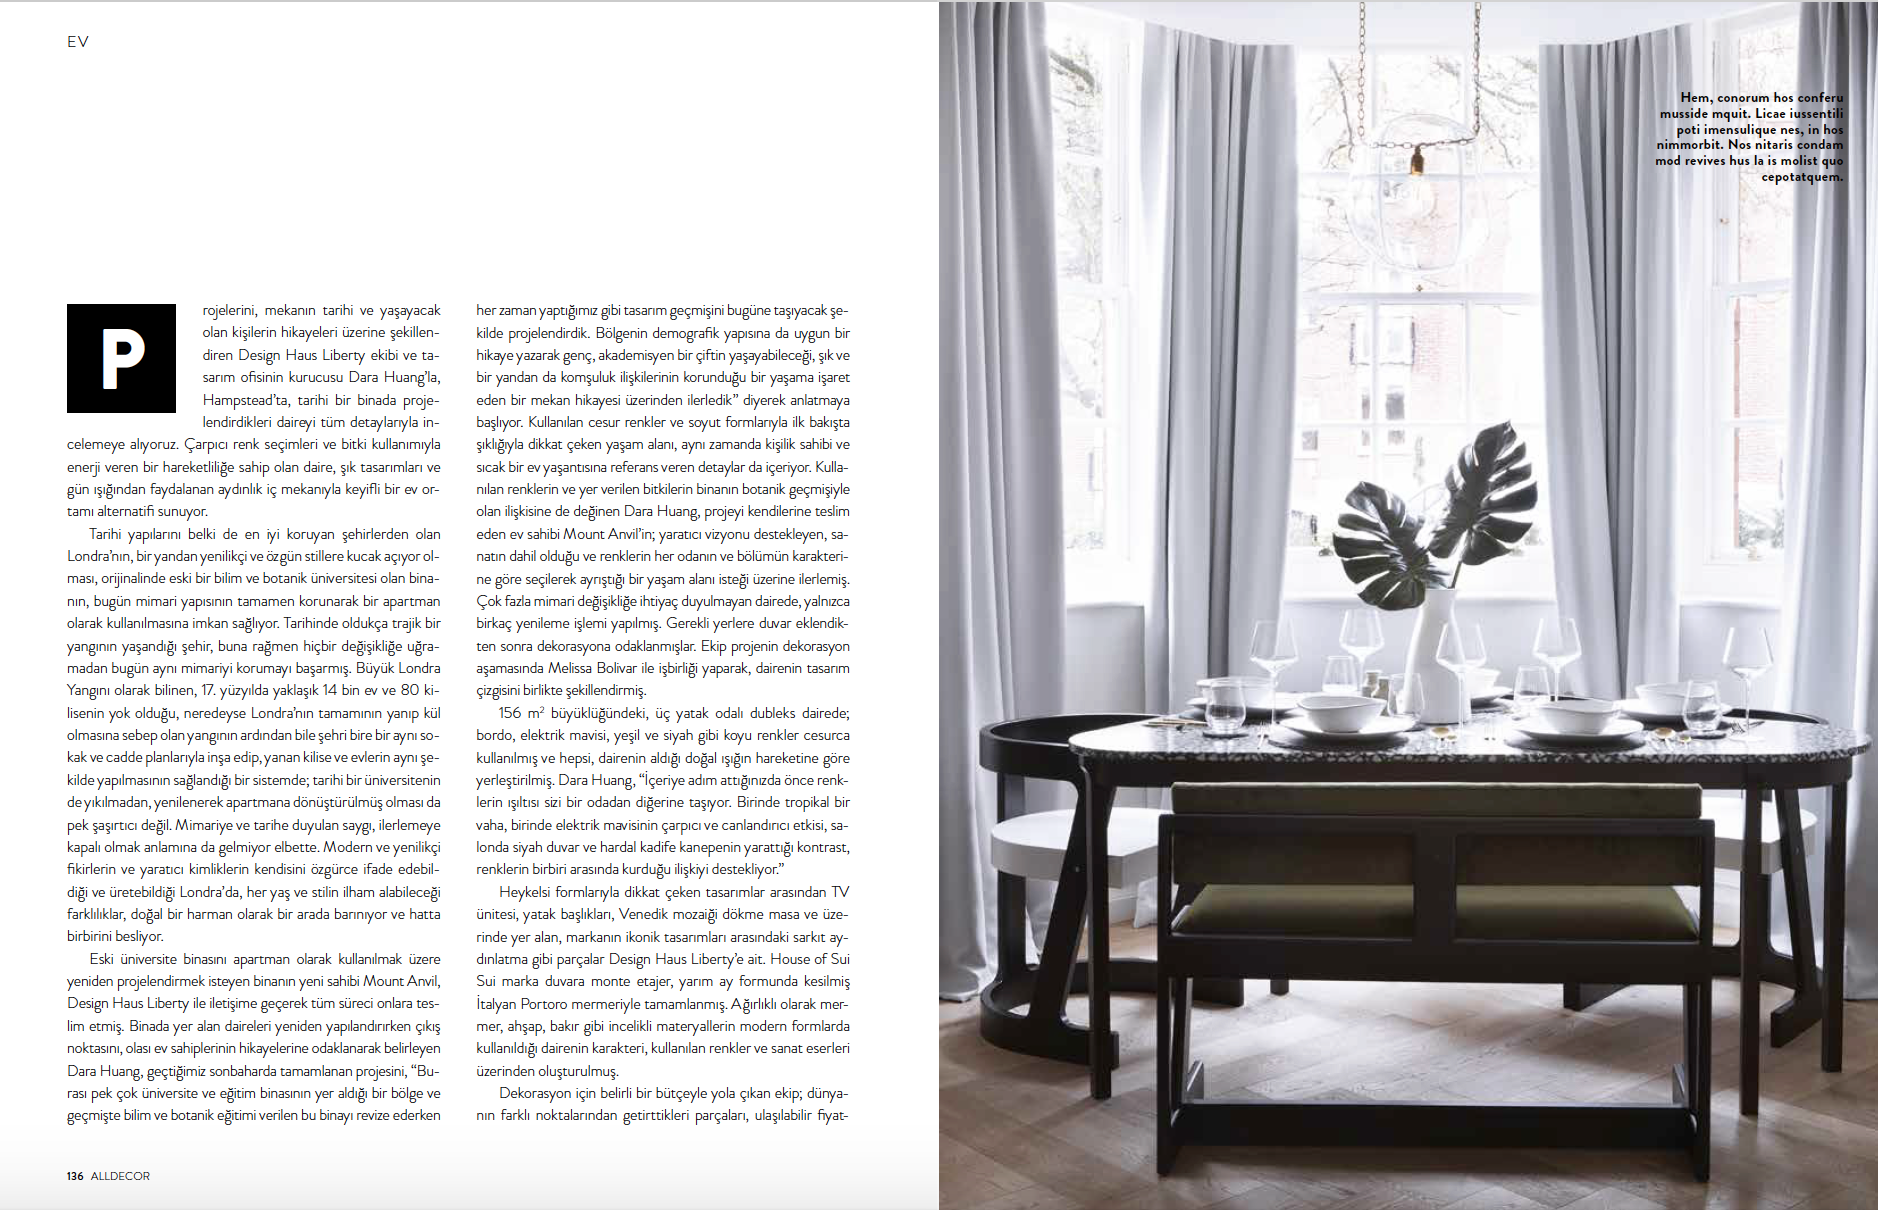 Melissa Bolivar House of Sui Sui Interior Designer London  Elle Decoration